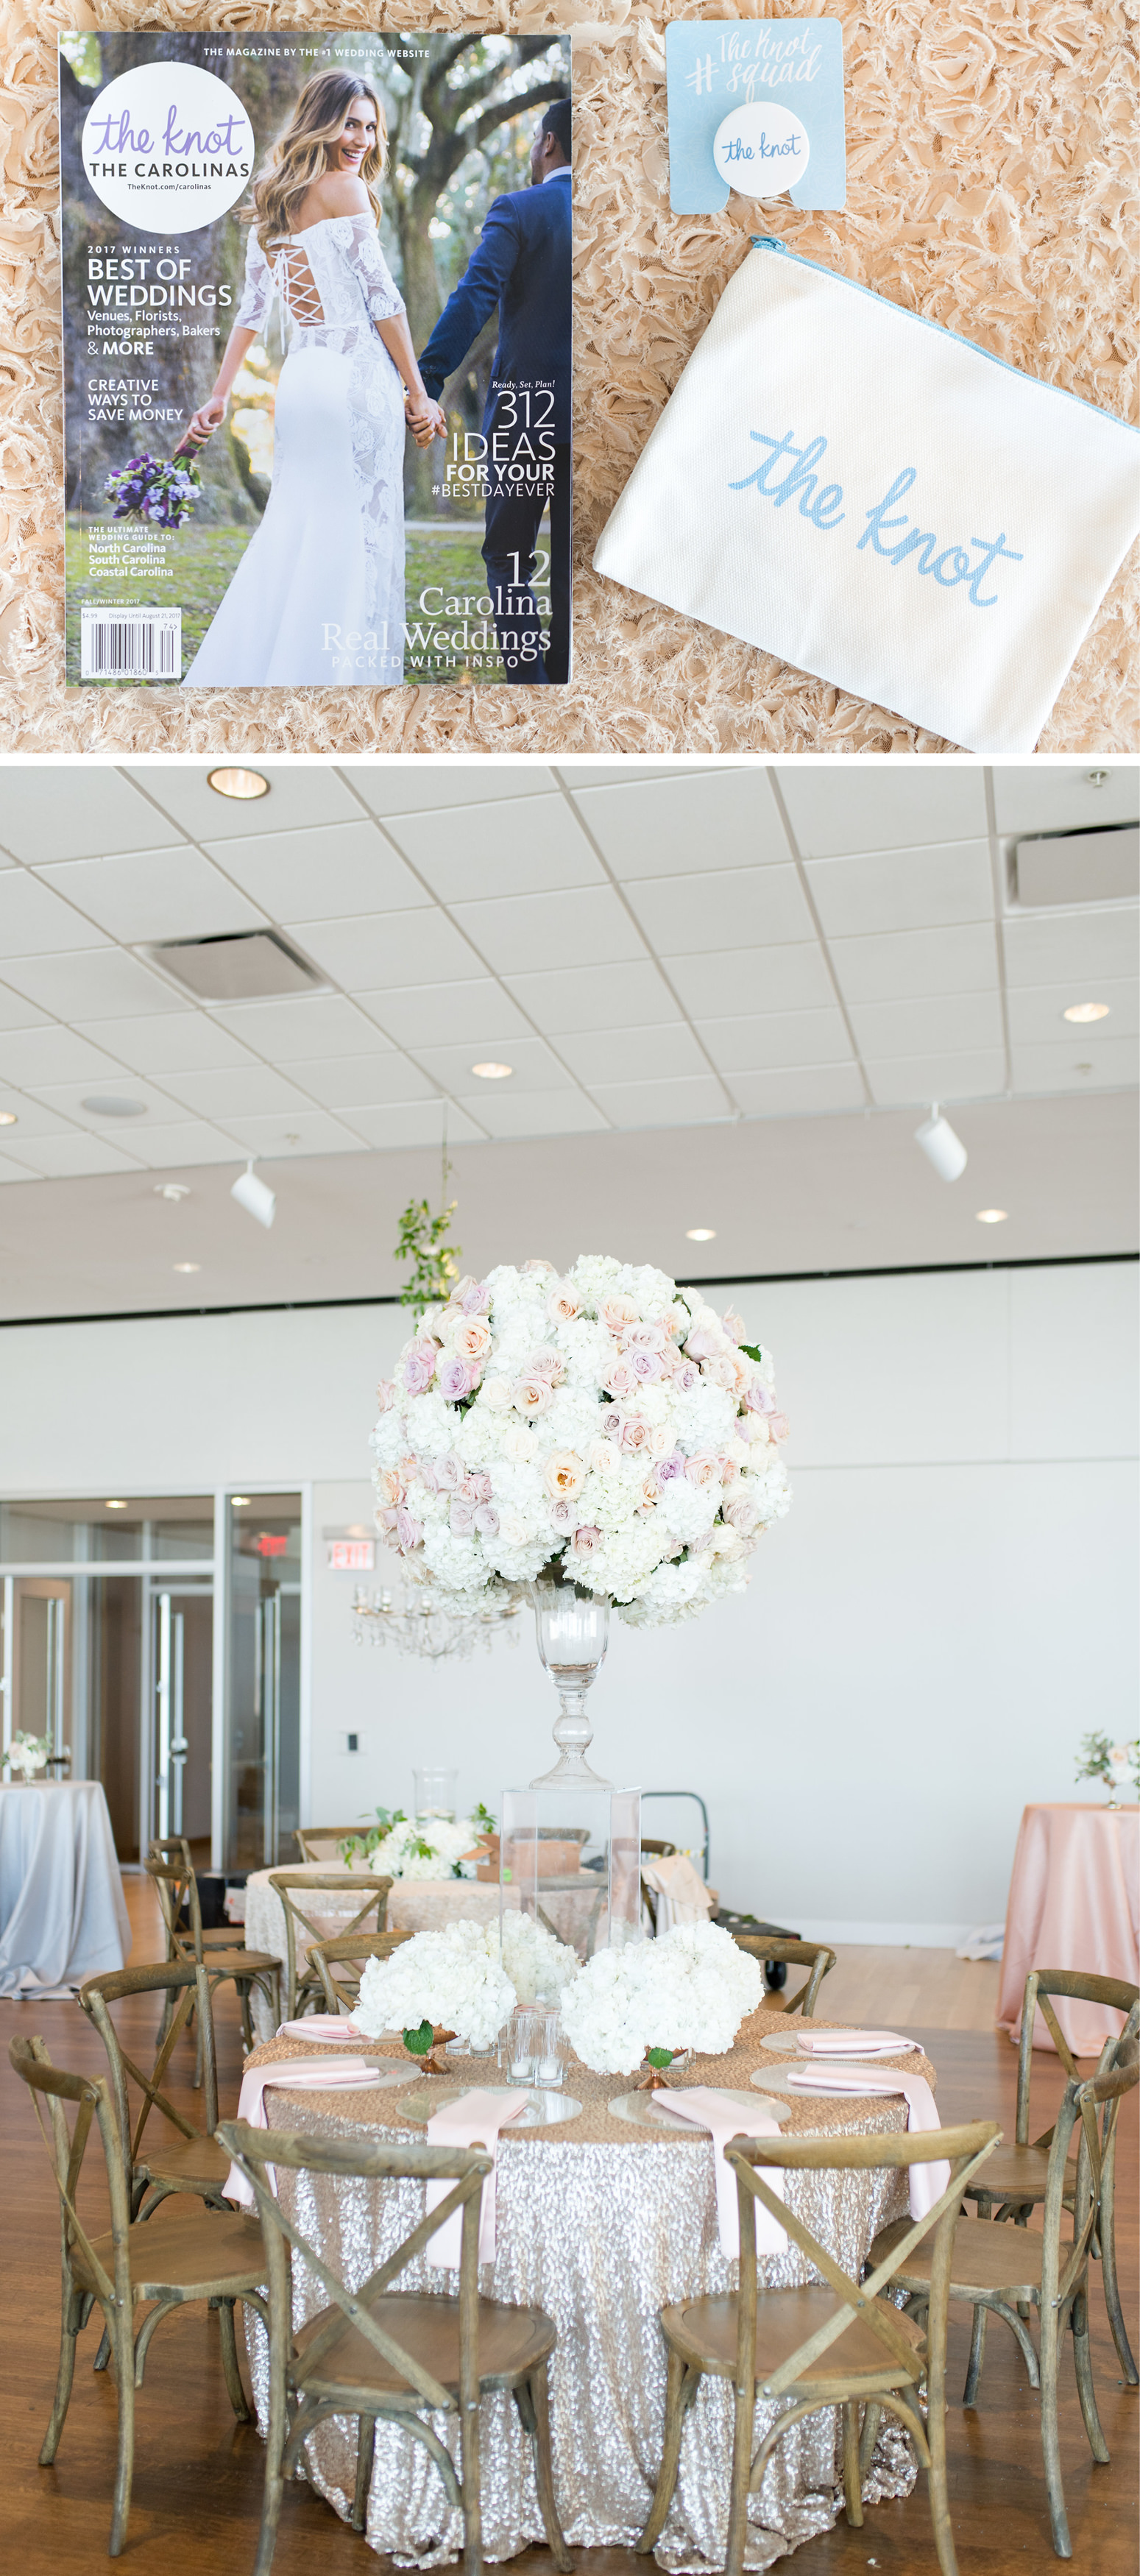 The-Knot-Pro-Charlotte-Mixer-Charlotte-Wedding-Professionals-Wedding-Stationer.jpg